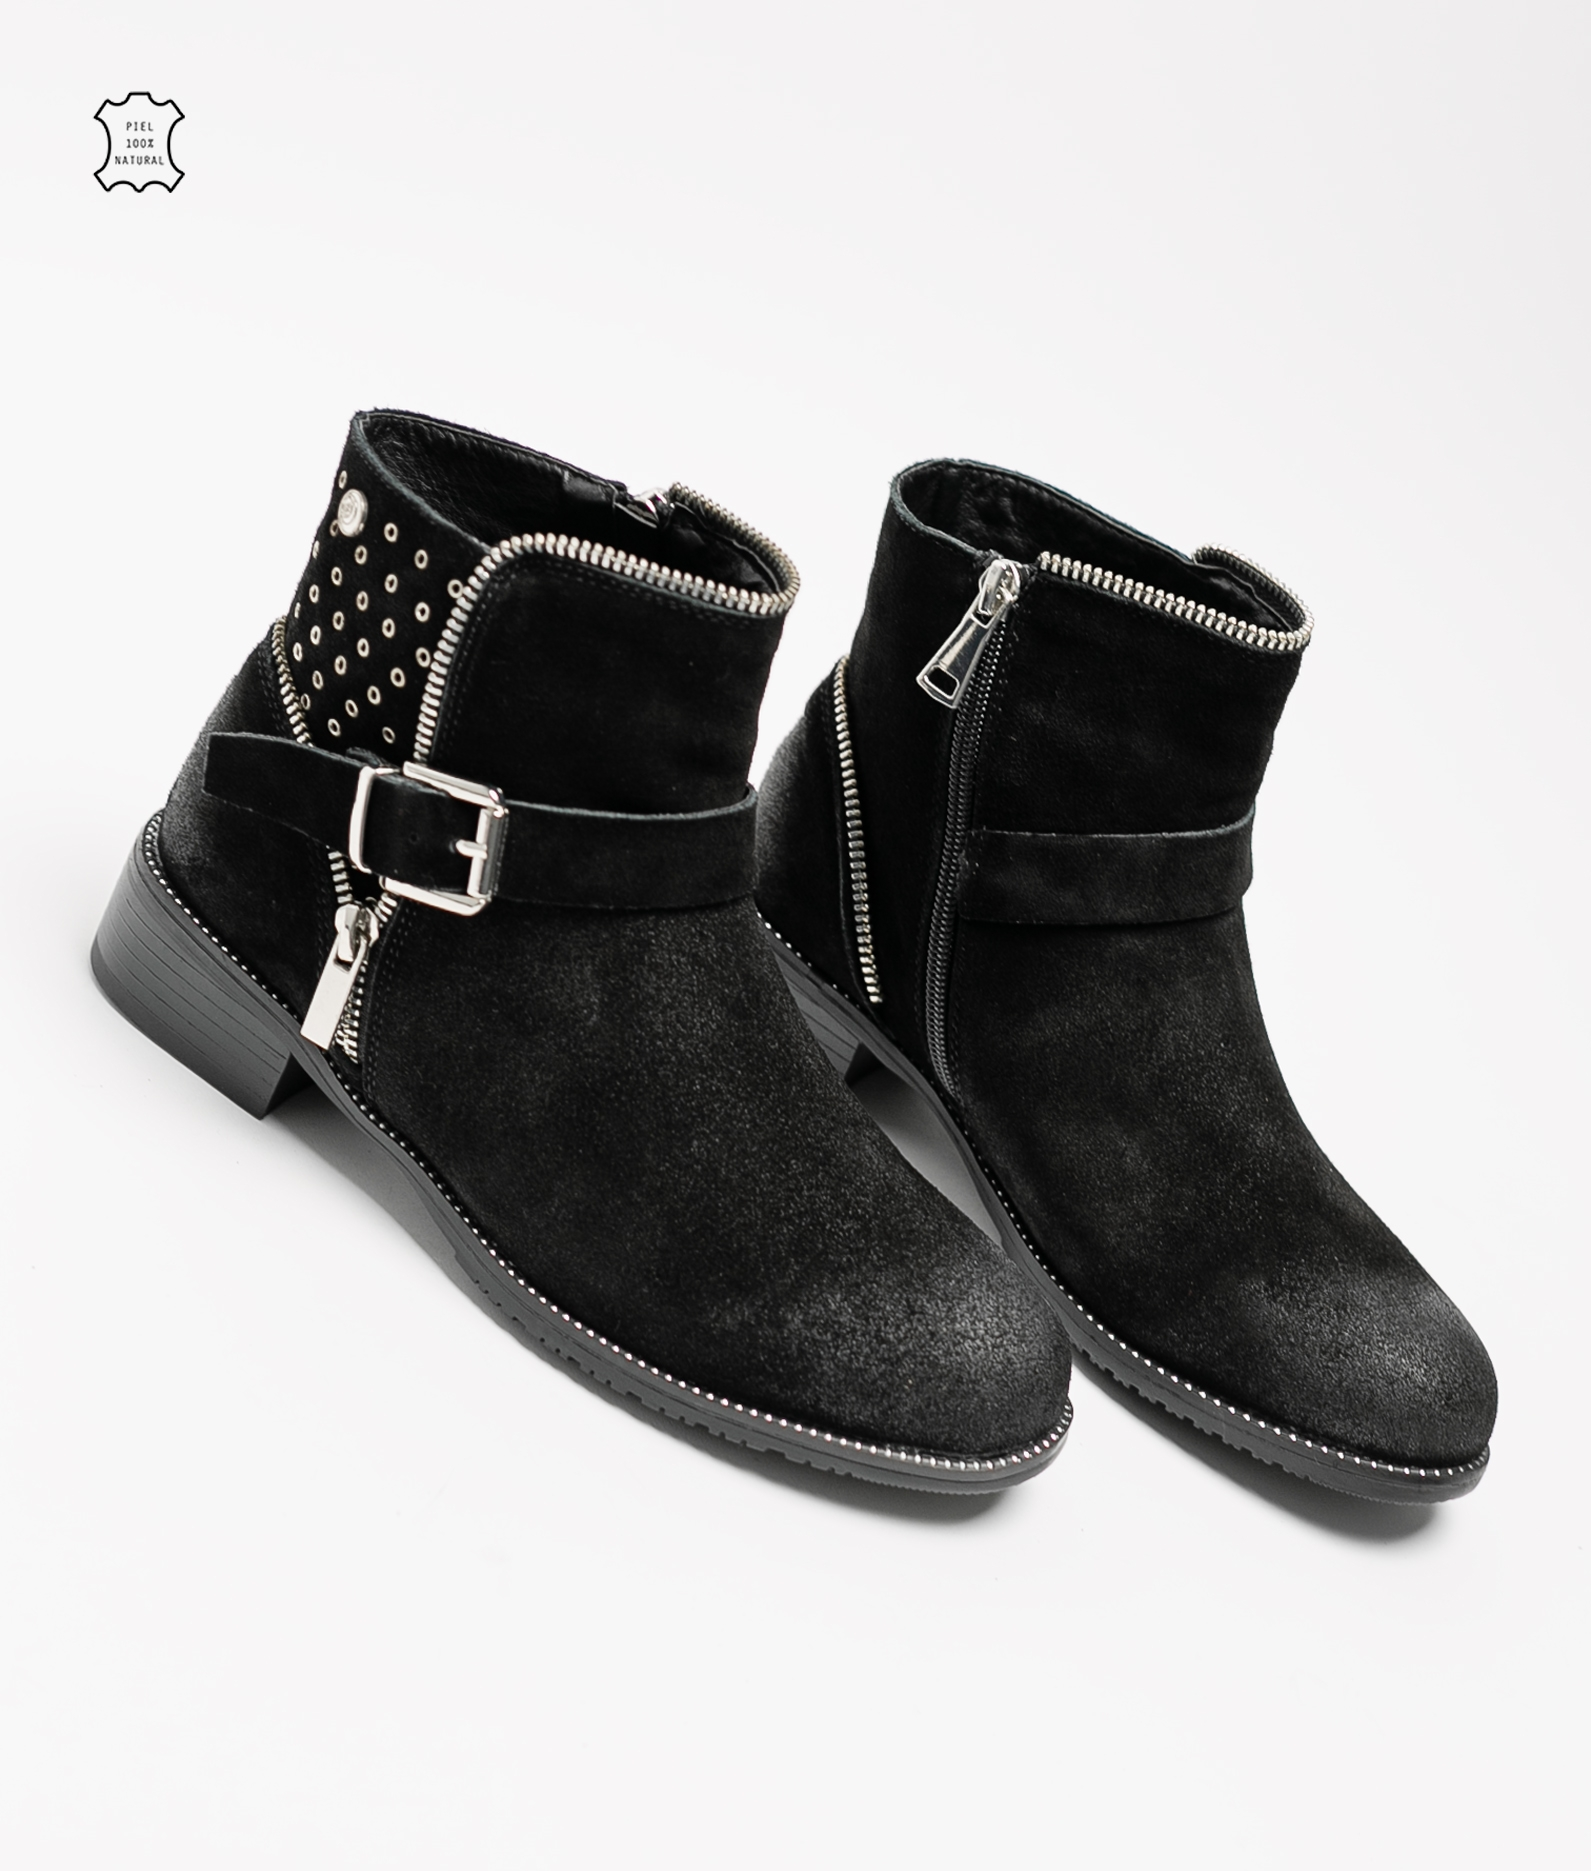 Lulen Low Boot - Black